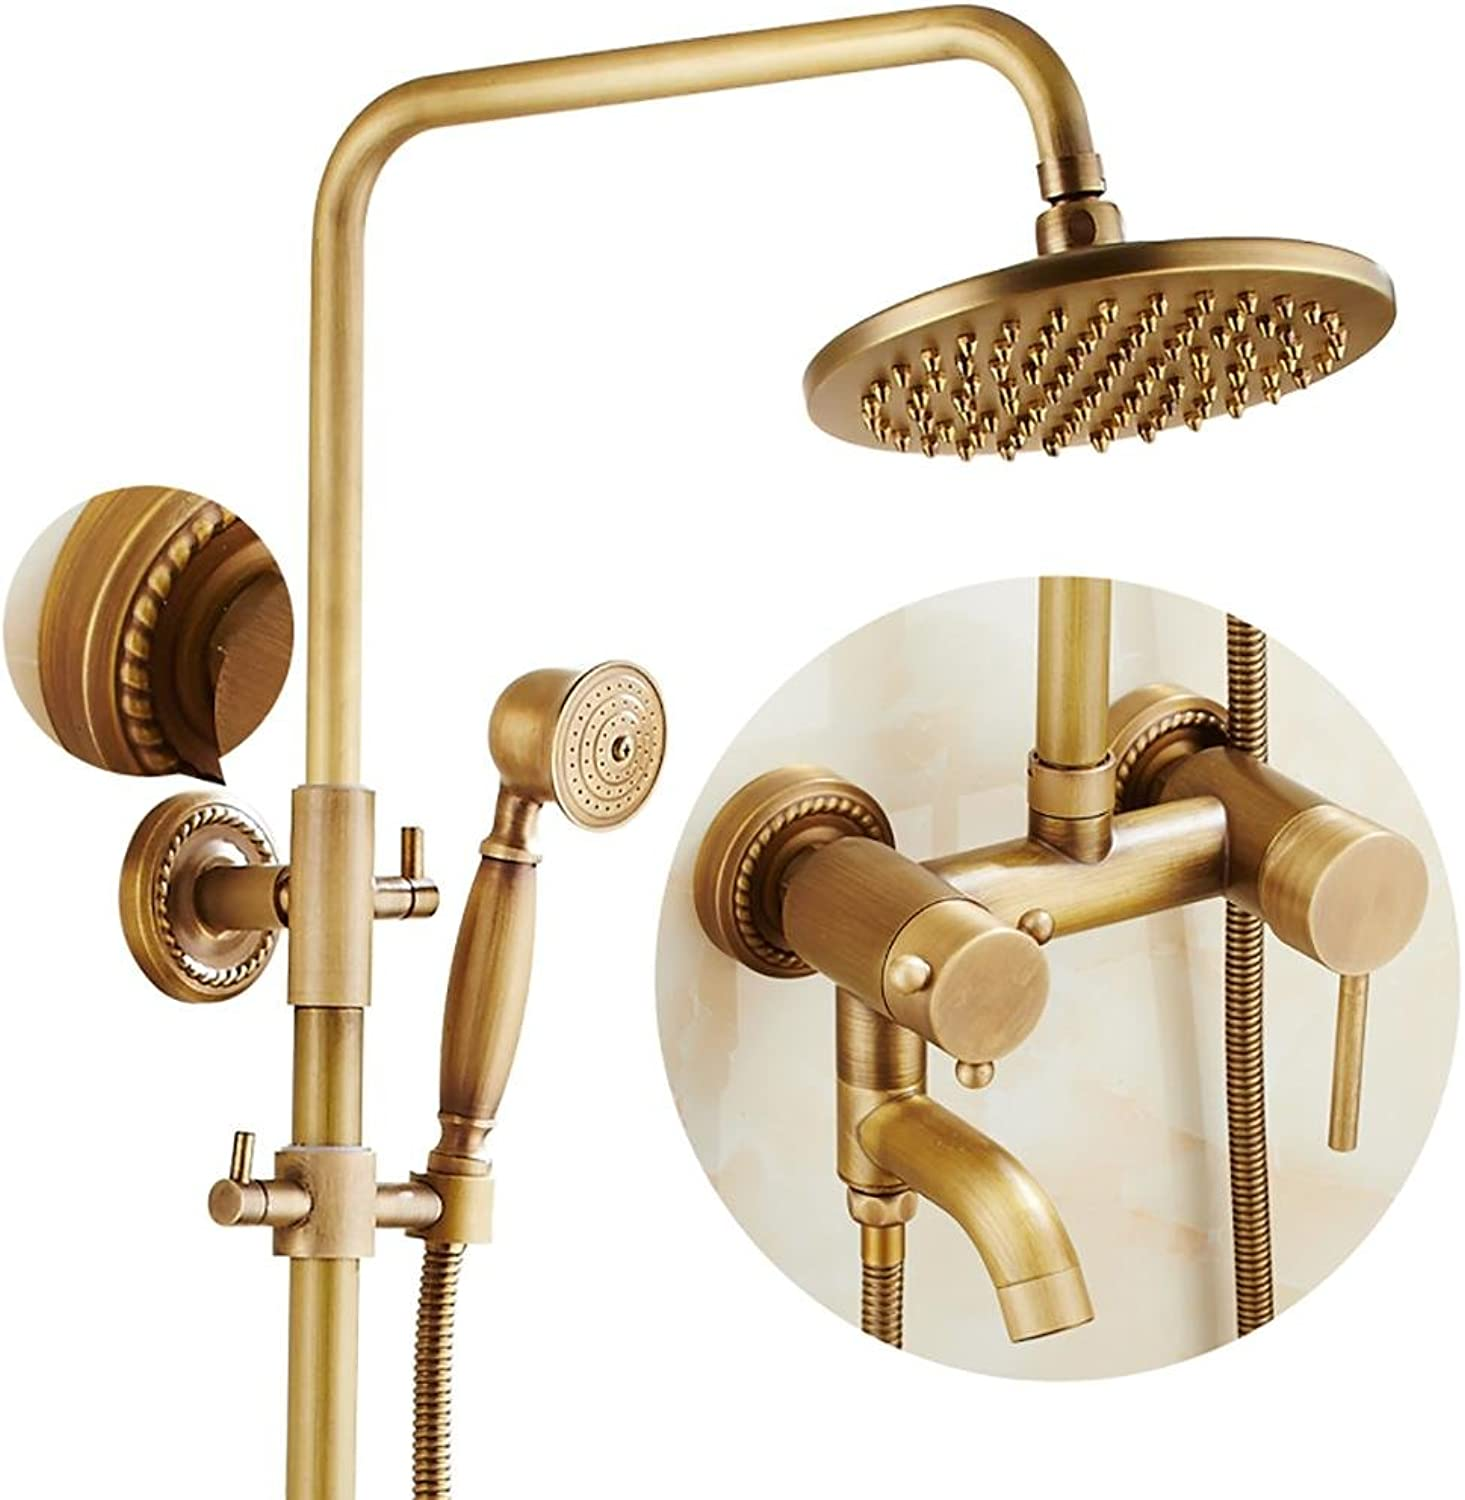 PLYY Shower System Shower Sets Shower Head Handheld Showerhead Three Holes Wall Mounted Brass